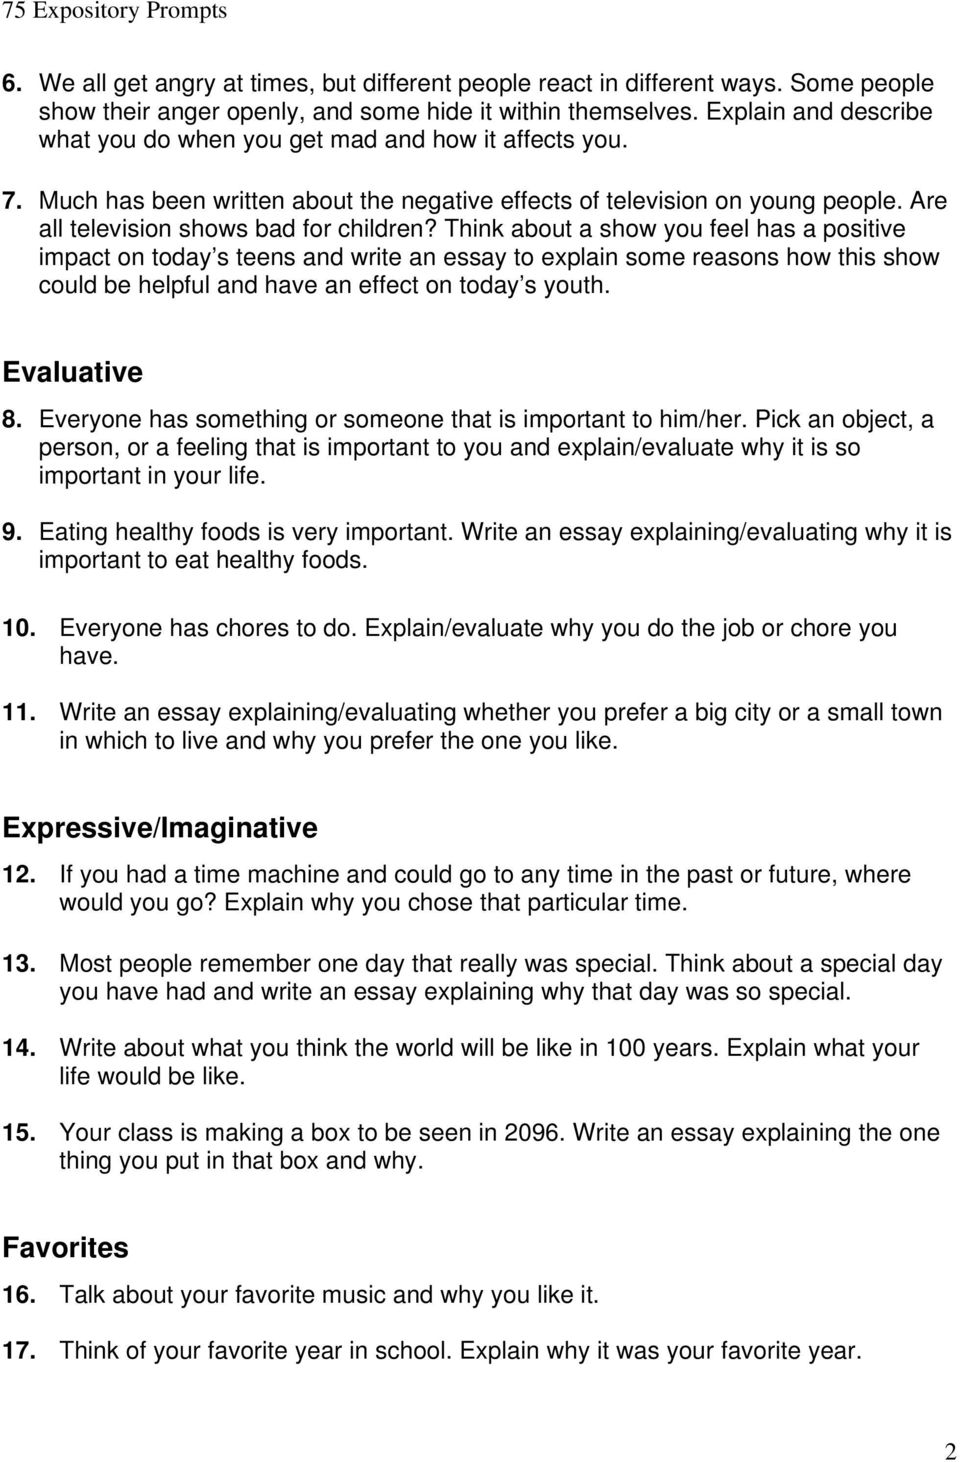 100 great essays essay on be i and buy i write an essay about life ...